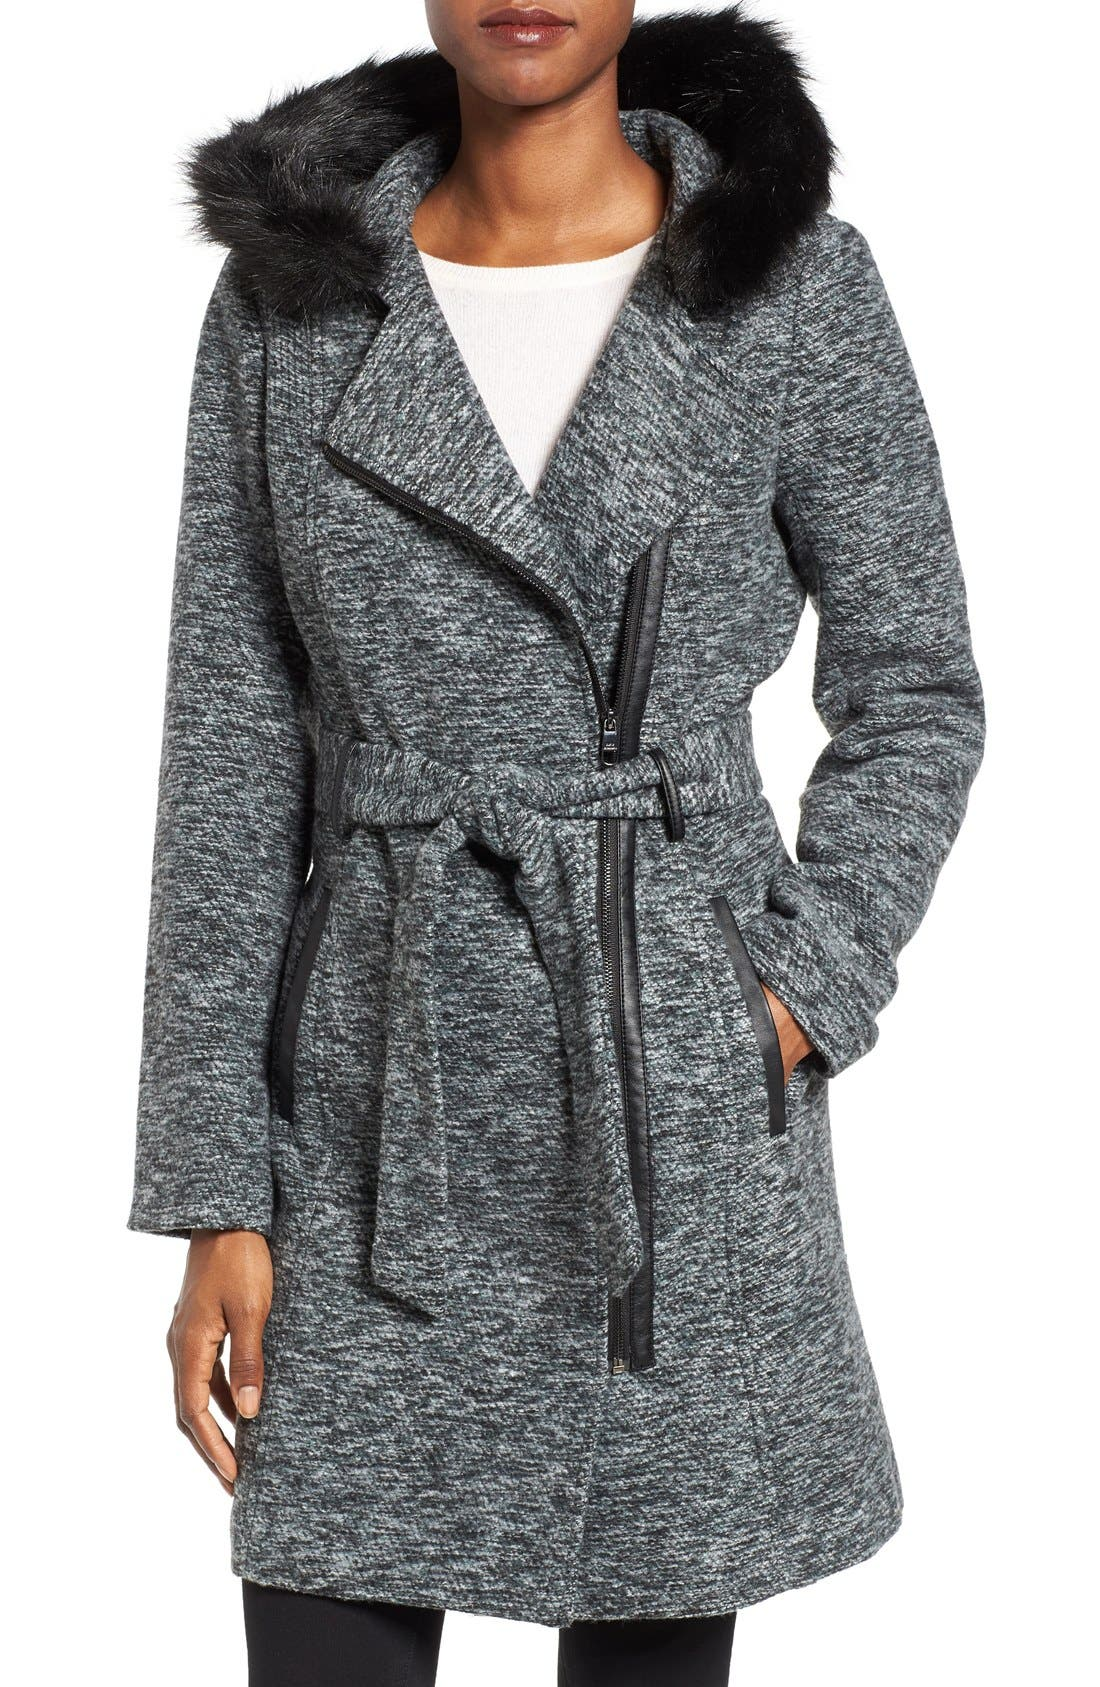 Main Image - Steve Madden Asymmetrical Hooded Coat with Faux Fur Trim